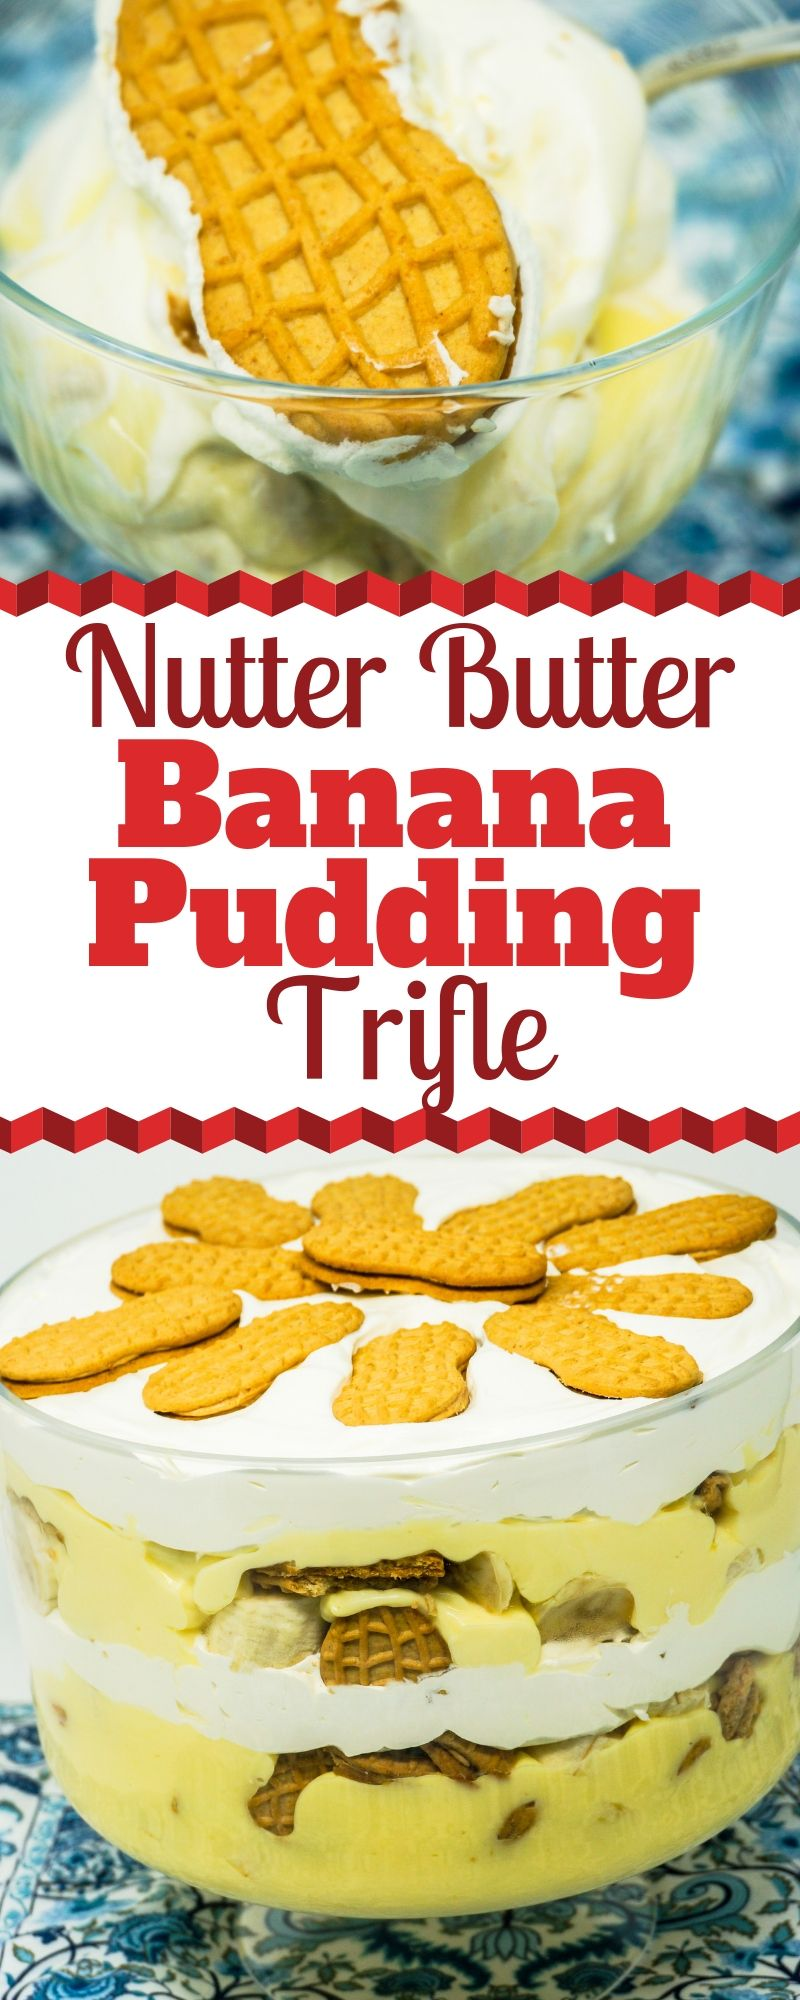 Nutter Butter Banana Pudding Trifle Recipe Banana Pudding Trifle Banana Pudding Cold Desserts